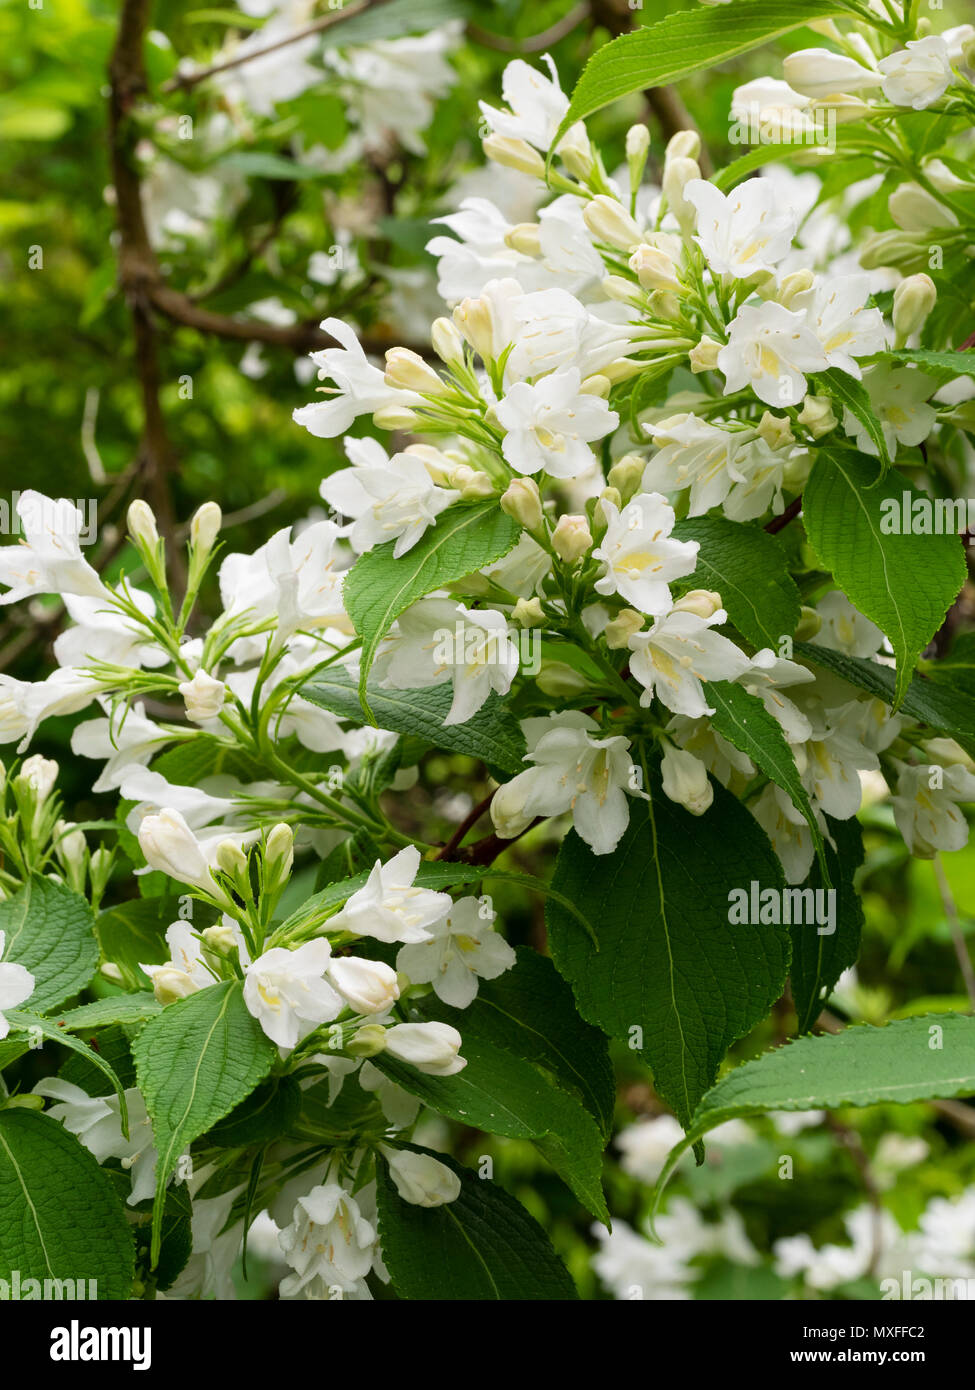 White flowers of the hardy early summer flowering garden shrub white flowers of the hardy early summer flowering garden shrub weigela florida snowflake mightylinksfo